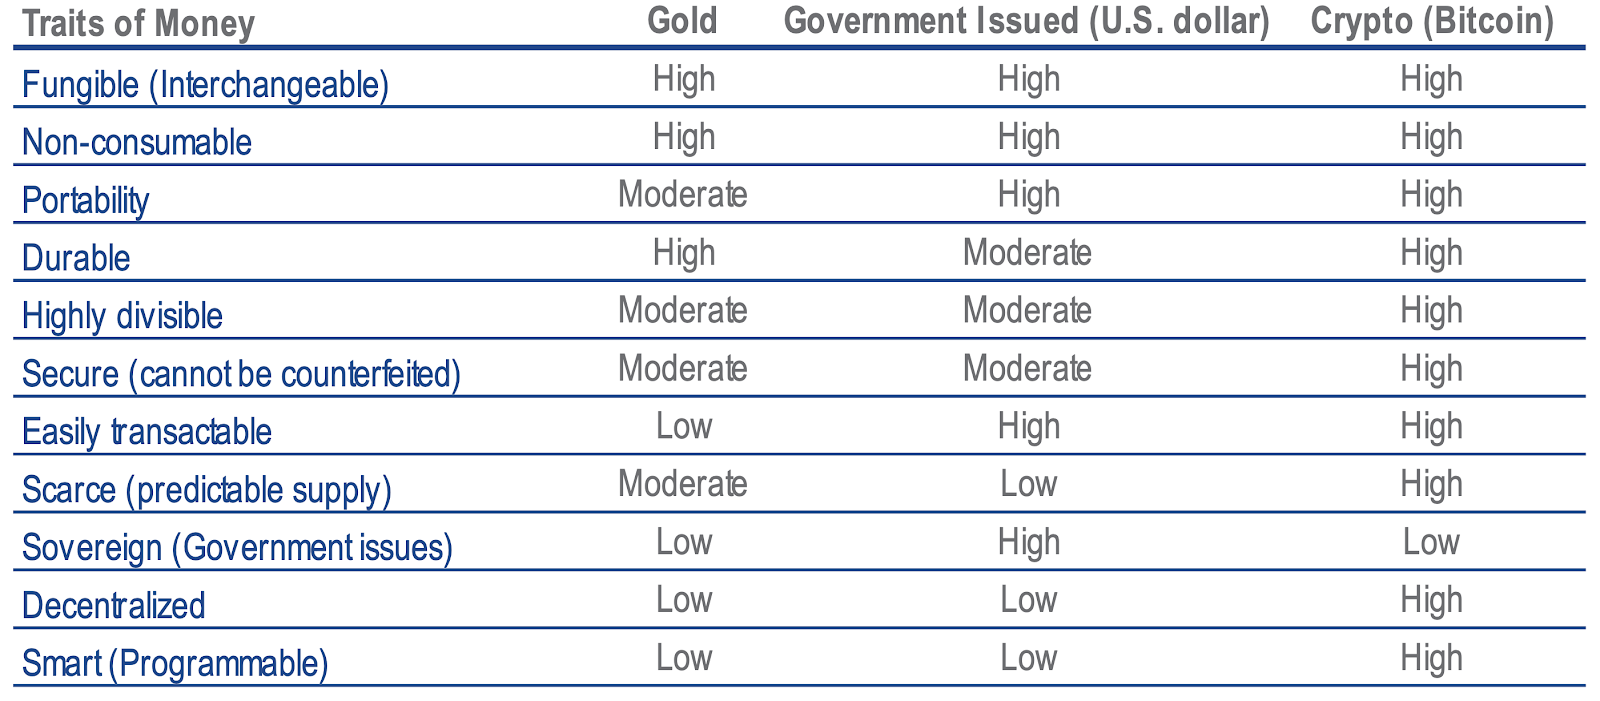 Comparison of the traits of money of Gold, United States dollars and Bitcoin